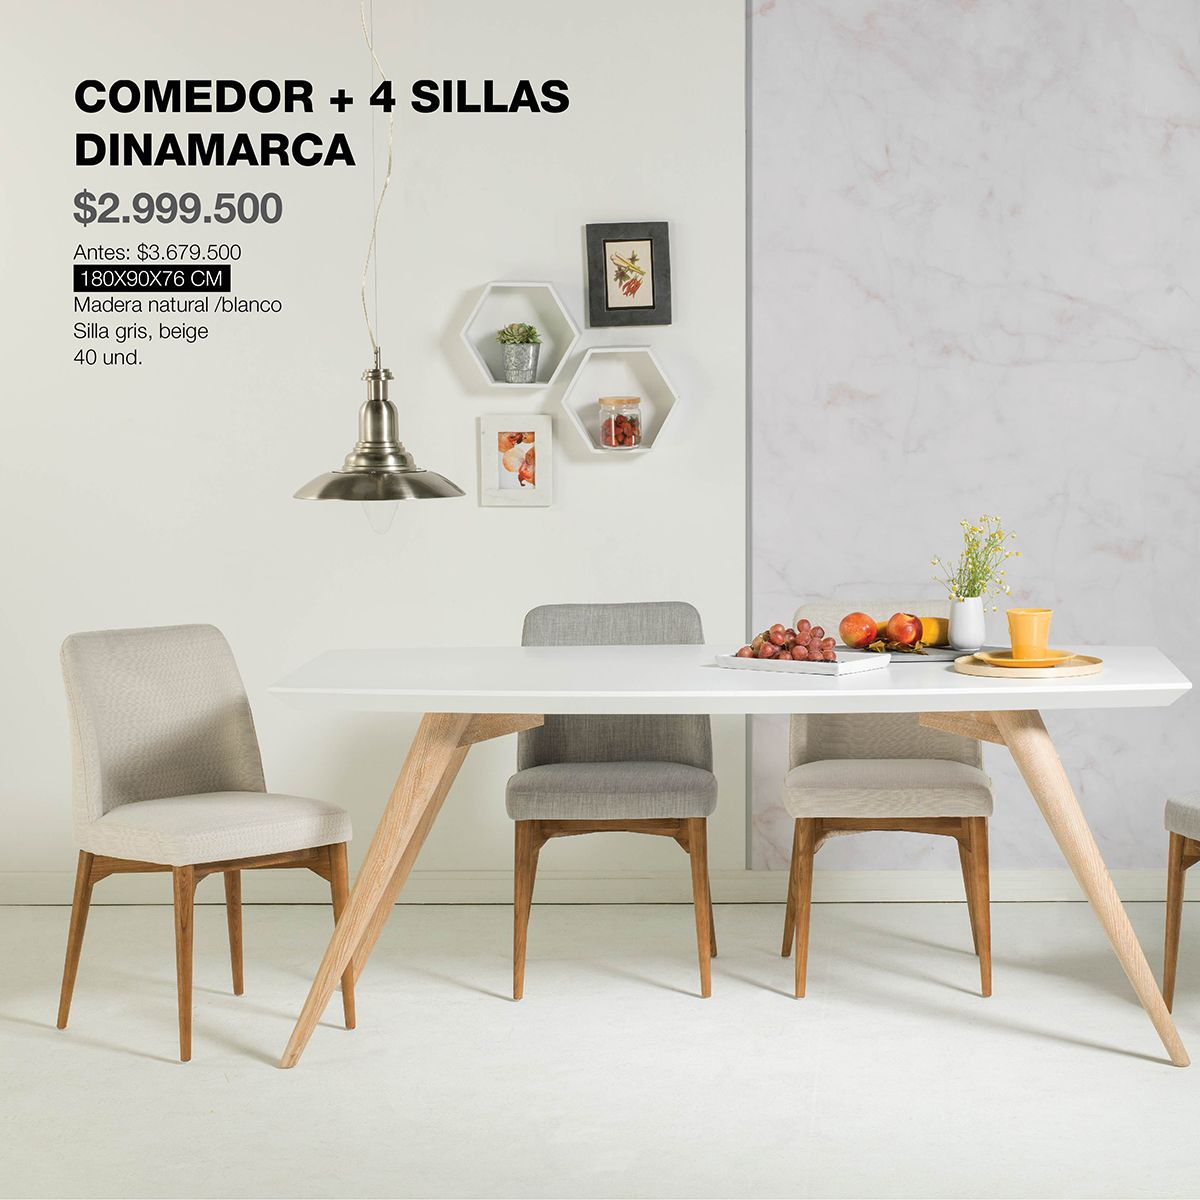 Comedor y sillas dinamarca dise ado en madera natural for Sillas de comedor color gris